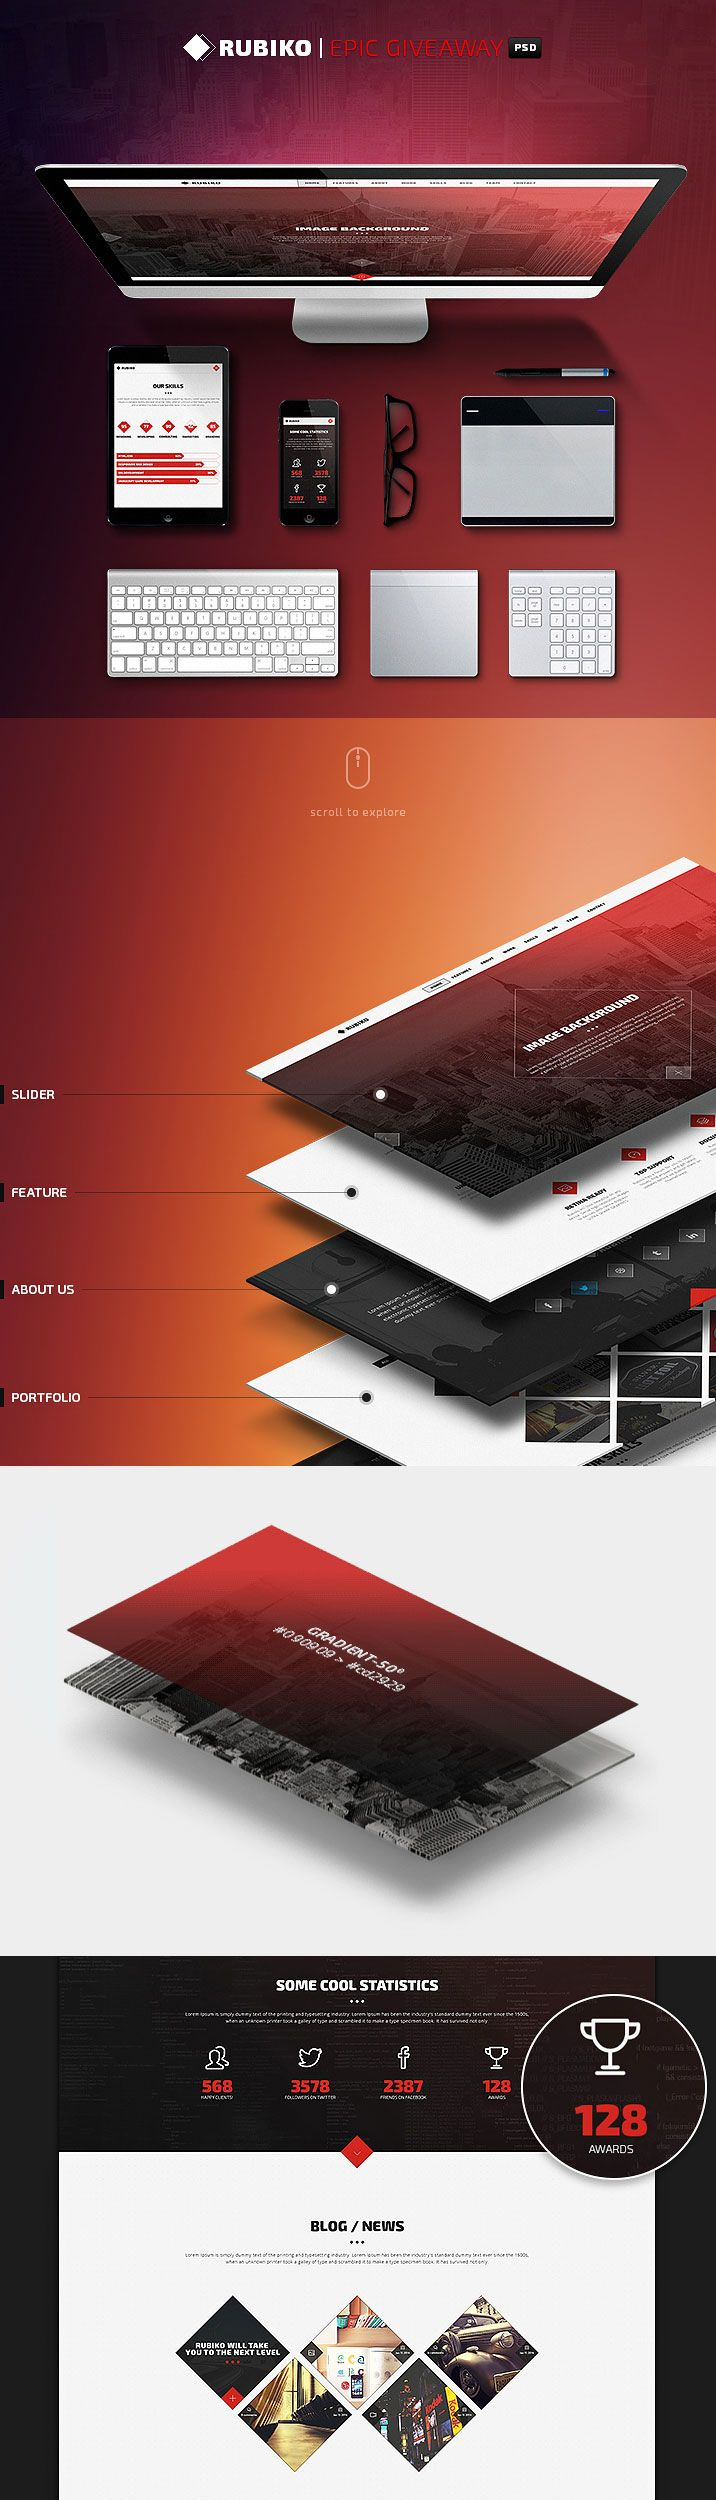 10 UI Design Projects